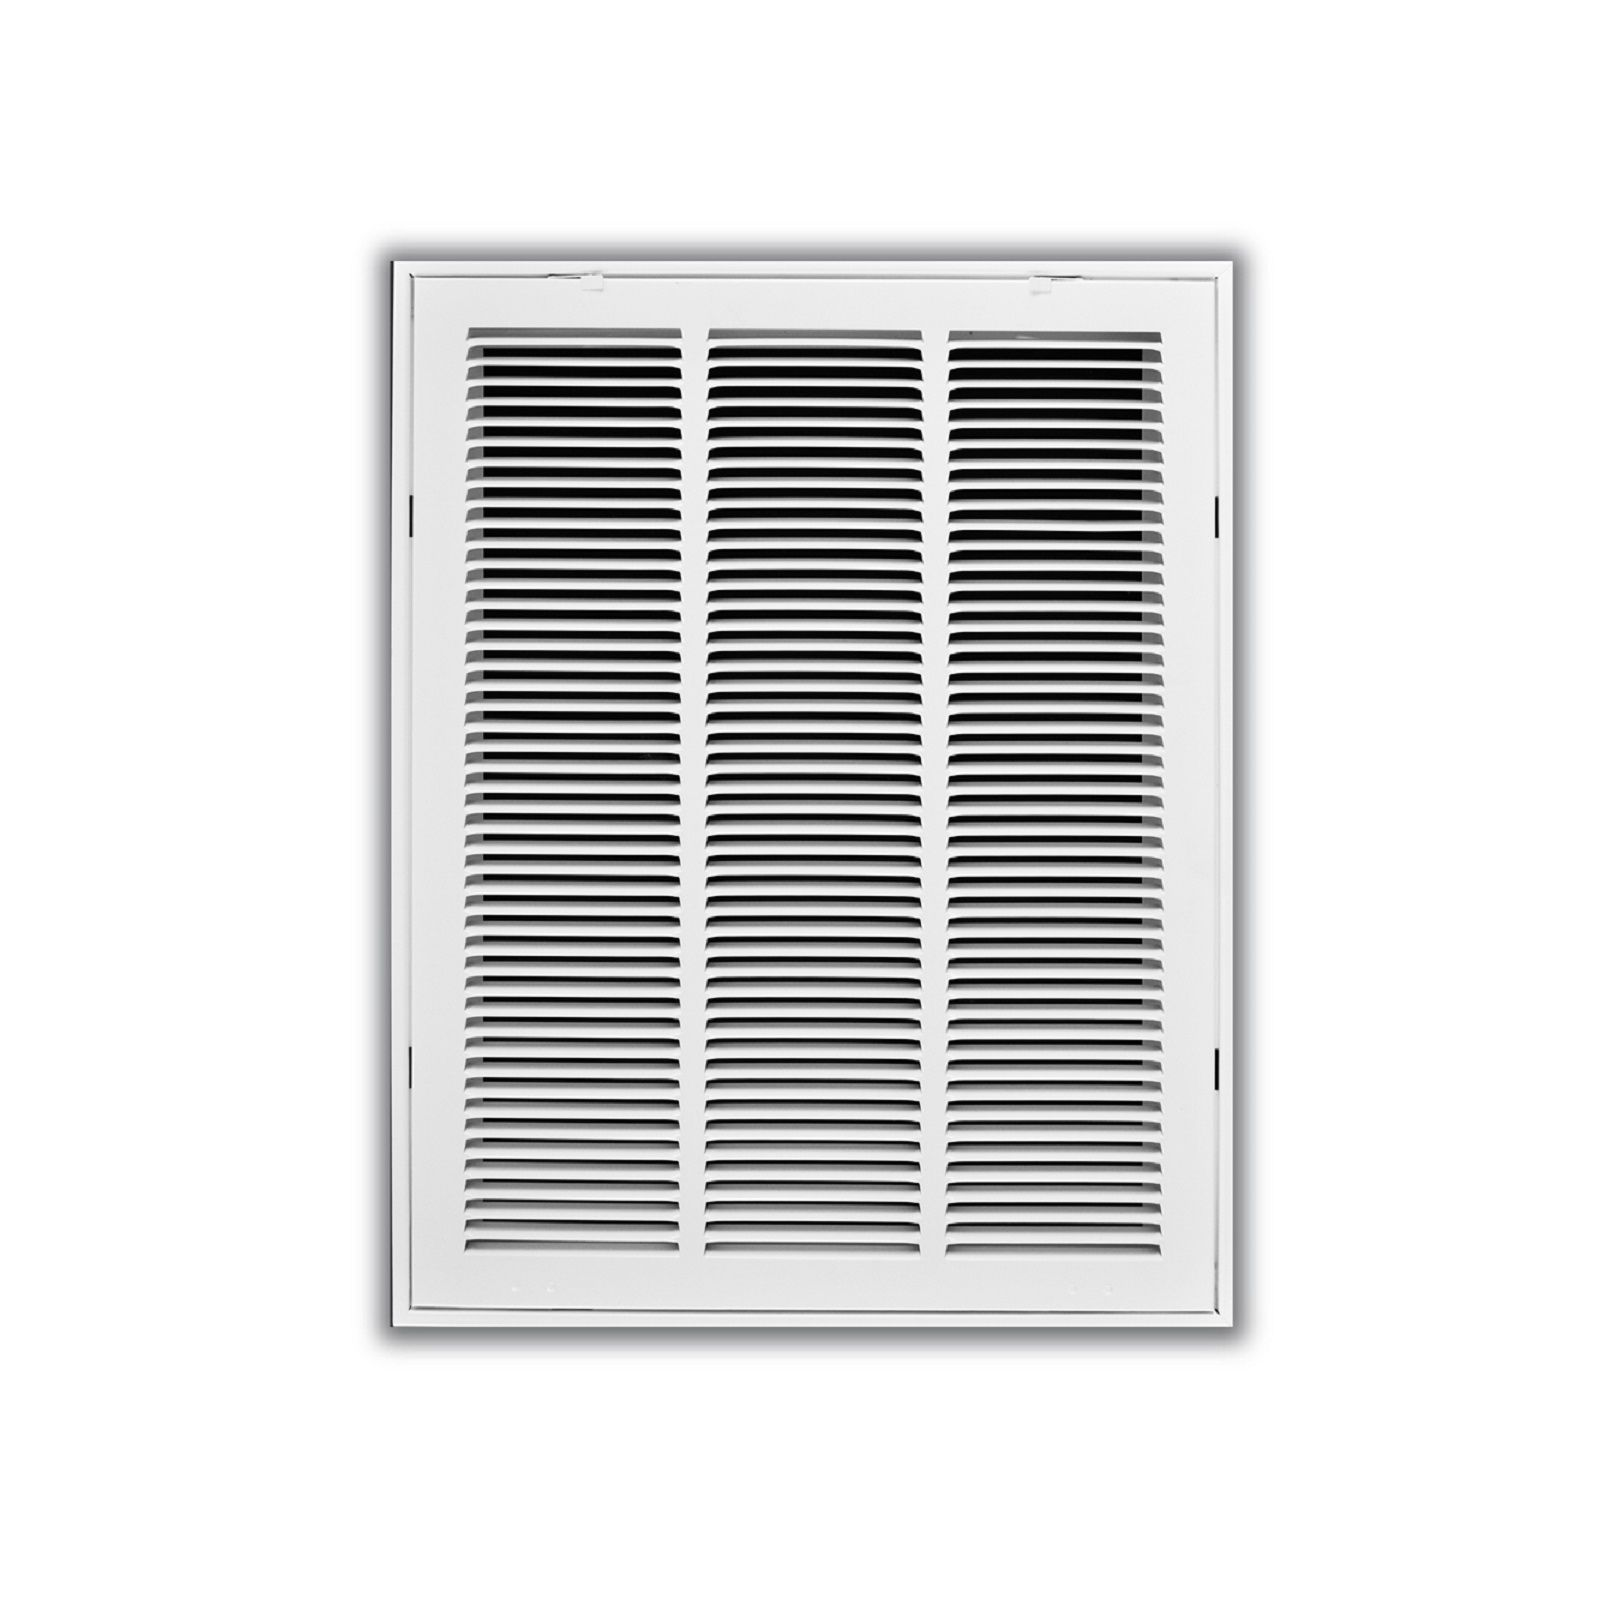 "TRUaire 190 24X24 - Steel Return Air Filter Grille With Fixed Hinged Face, White, 24"" X 24"""